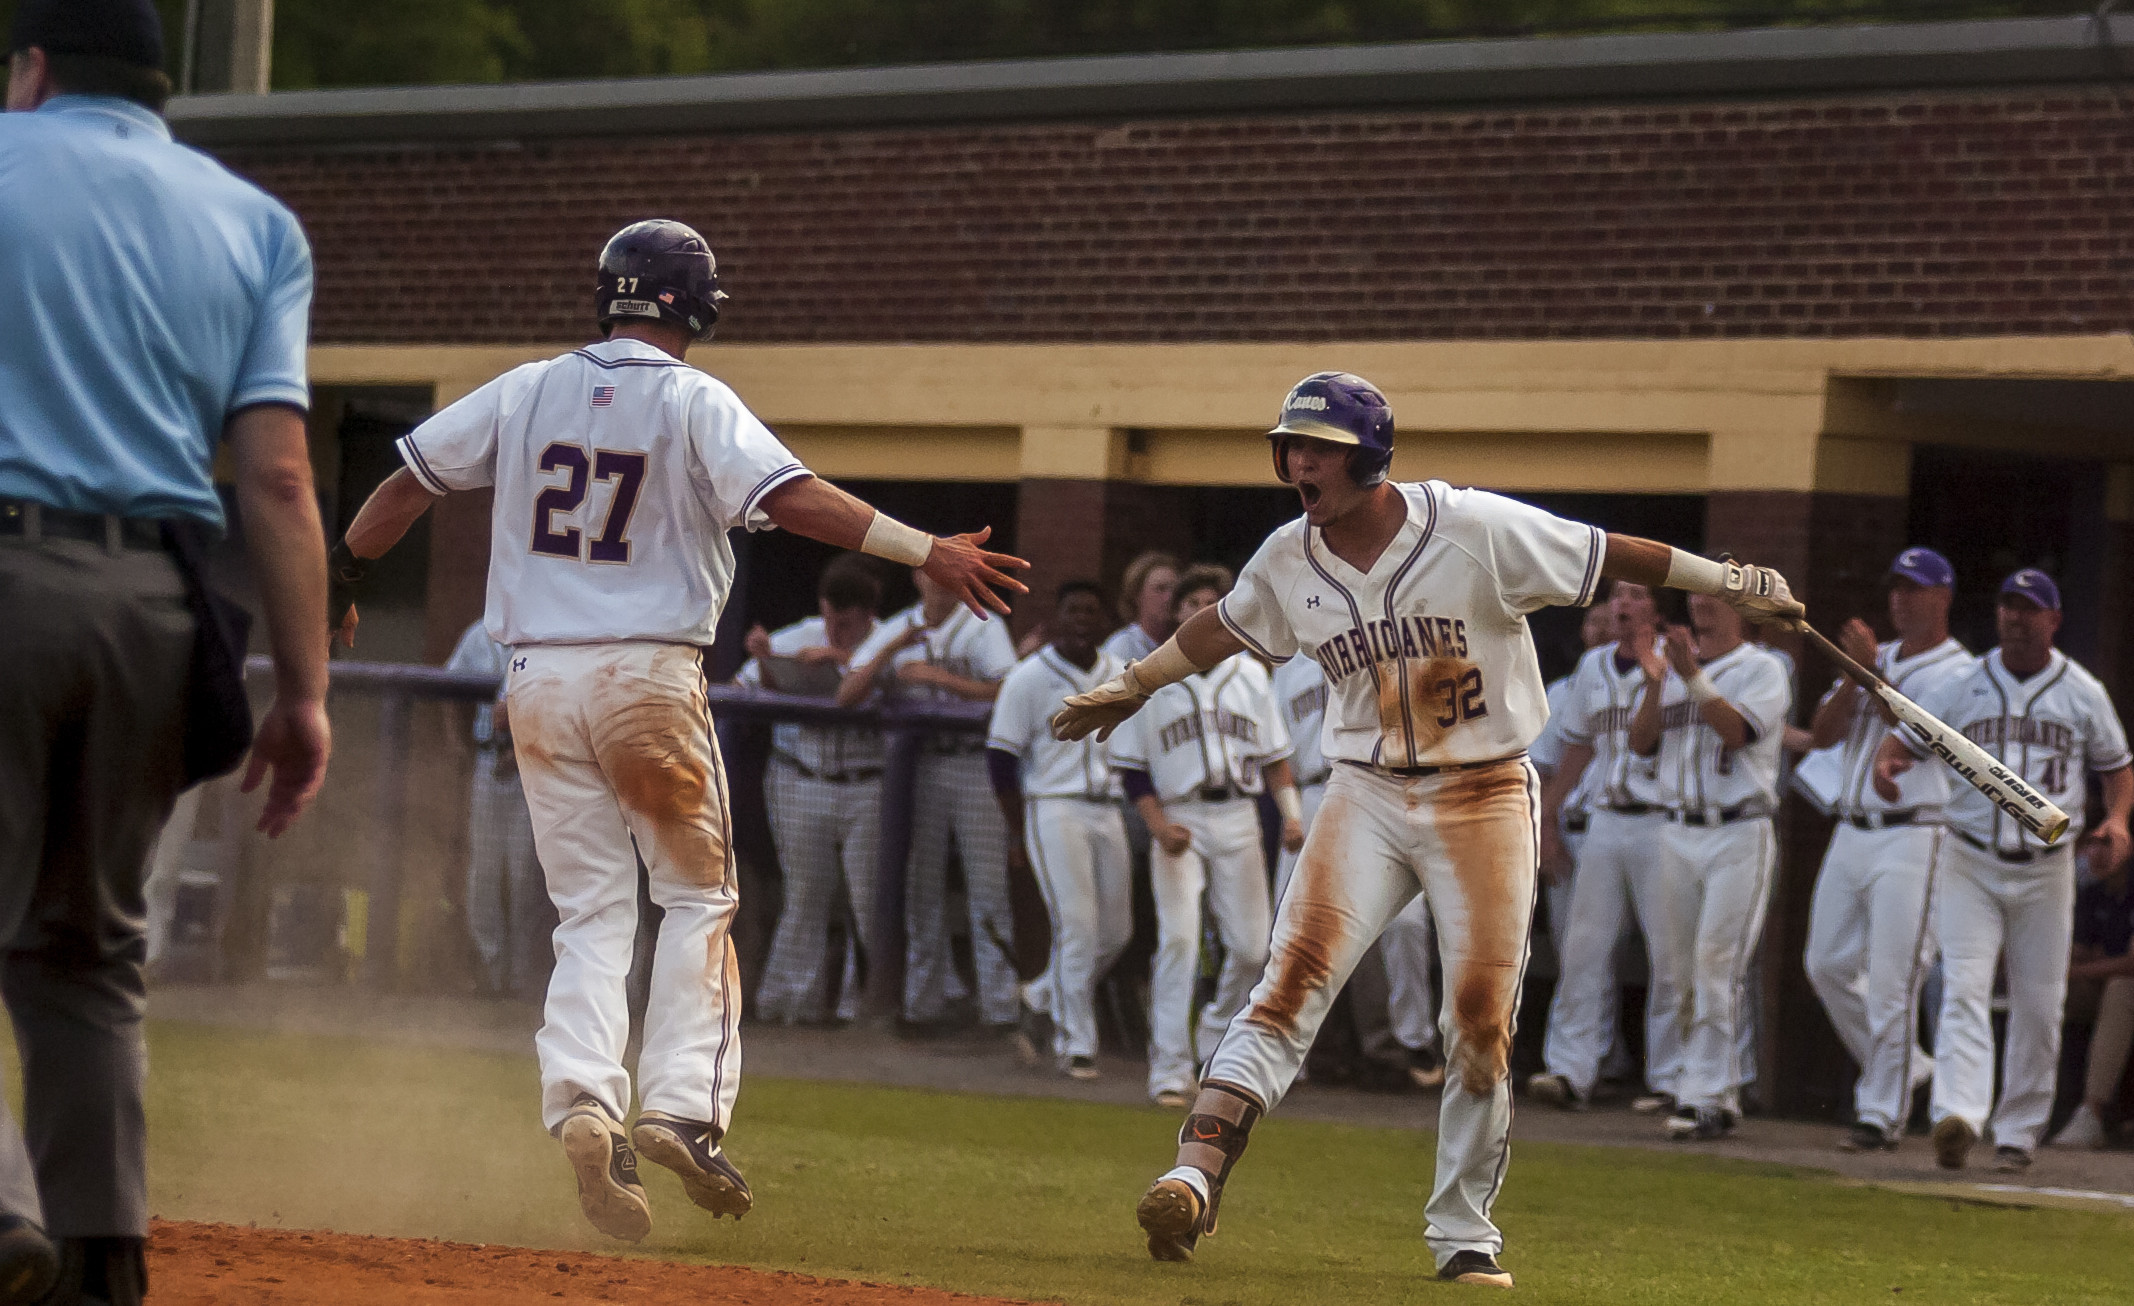 Preston Welchel (27) and Devin Warner celebrate Welchel's run in the sixth inning of Game 1